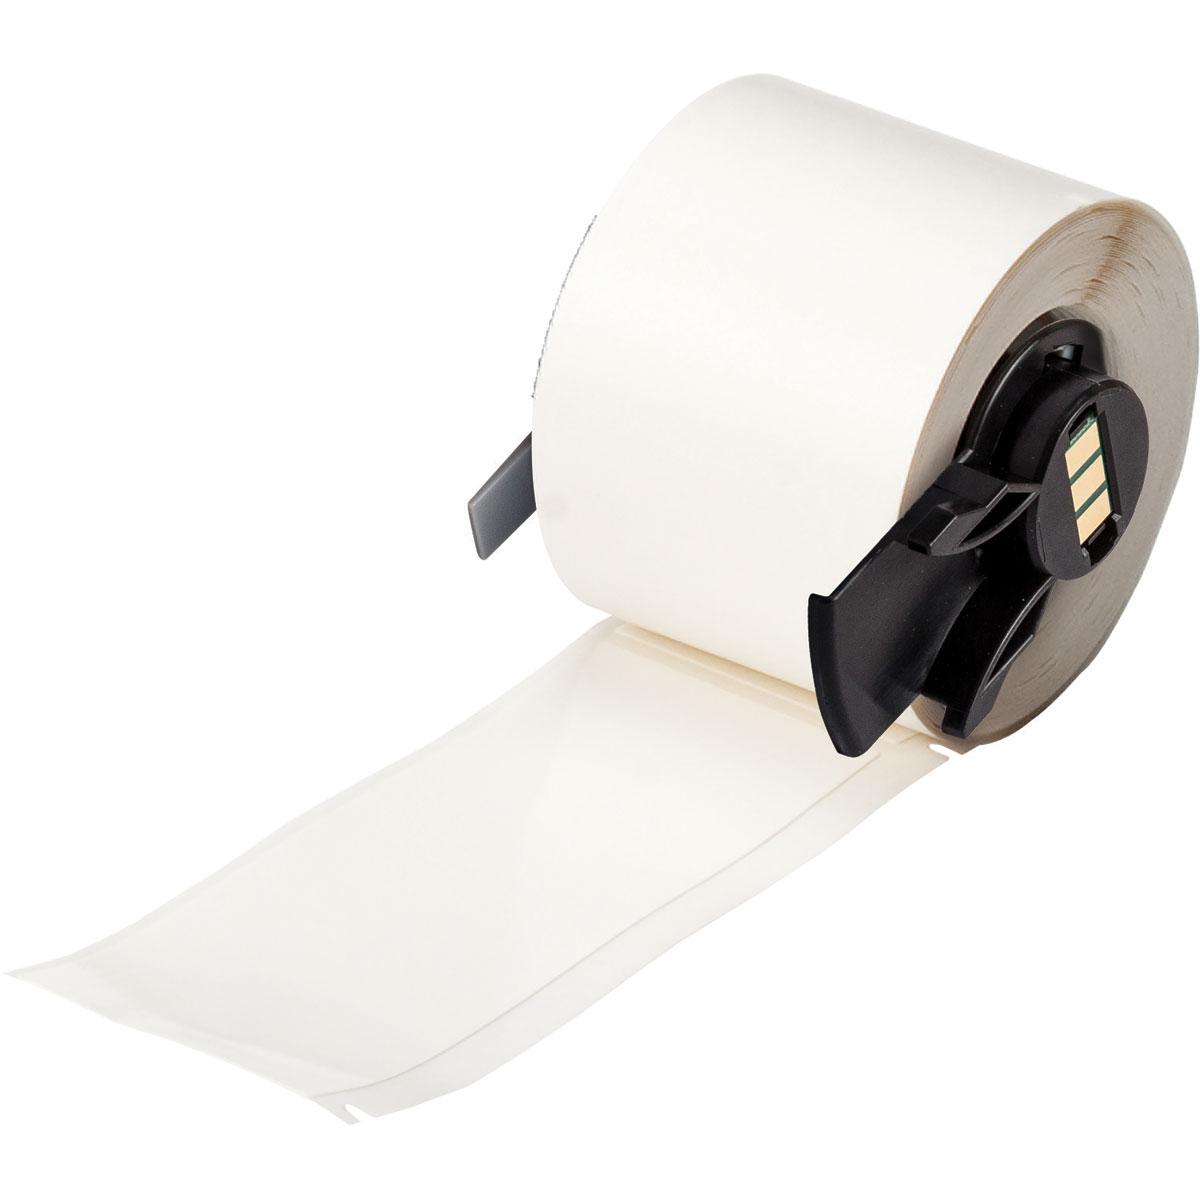 B-498 Repositionable Vinyl Cloth White Color Label 750 Per Roll 0.25 Width Brady PTL-28-498 TLS 2200 And TLS PC Link 1.5 Height